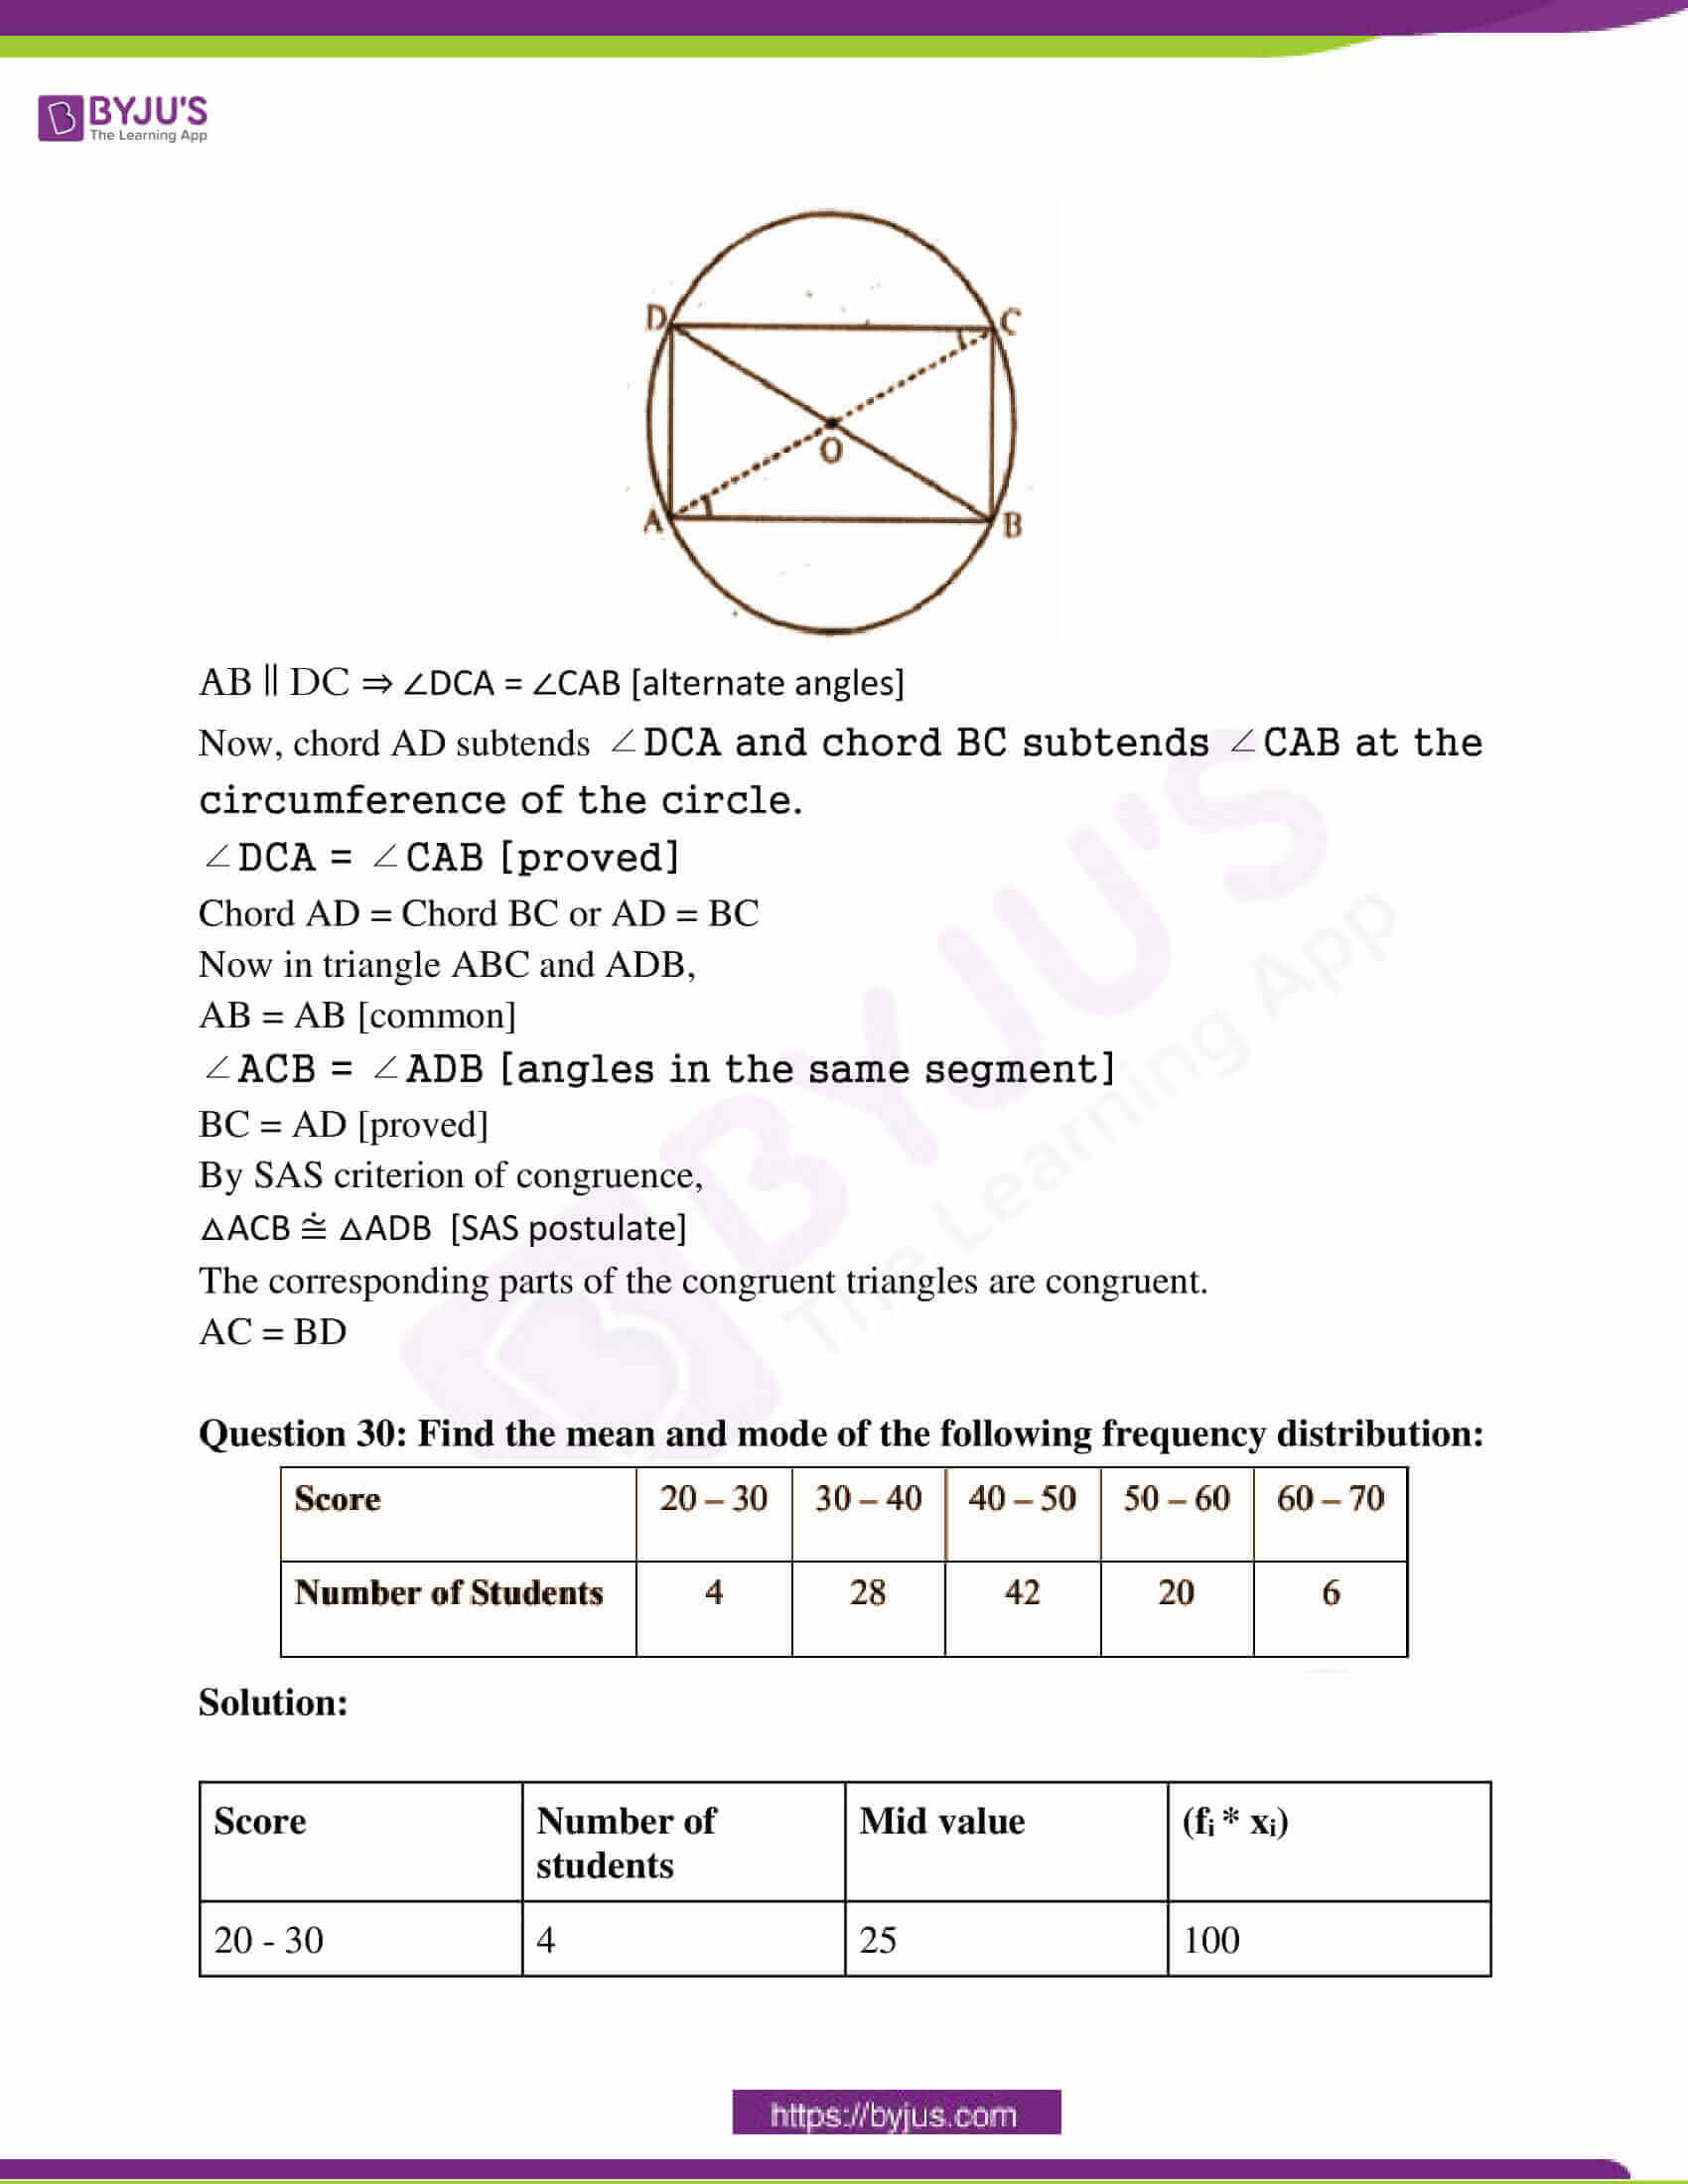 rajasthan board class 10 examination question paper sol march 2018 19